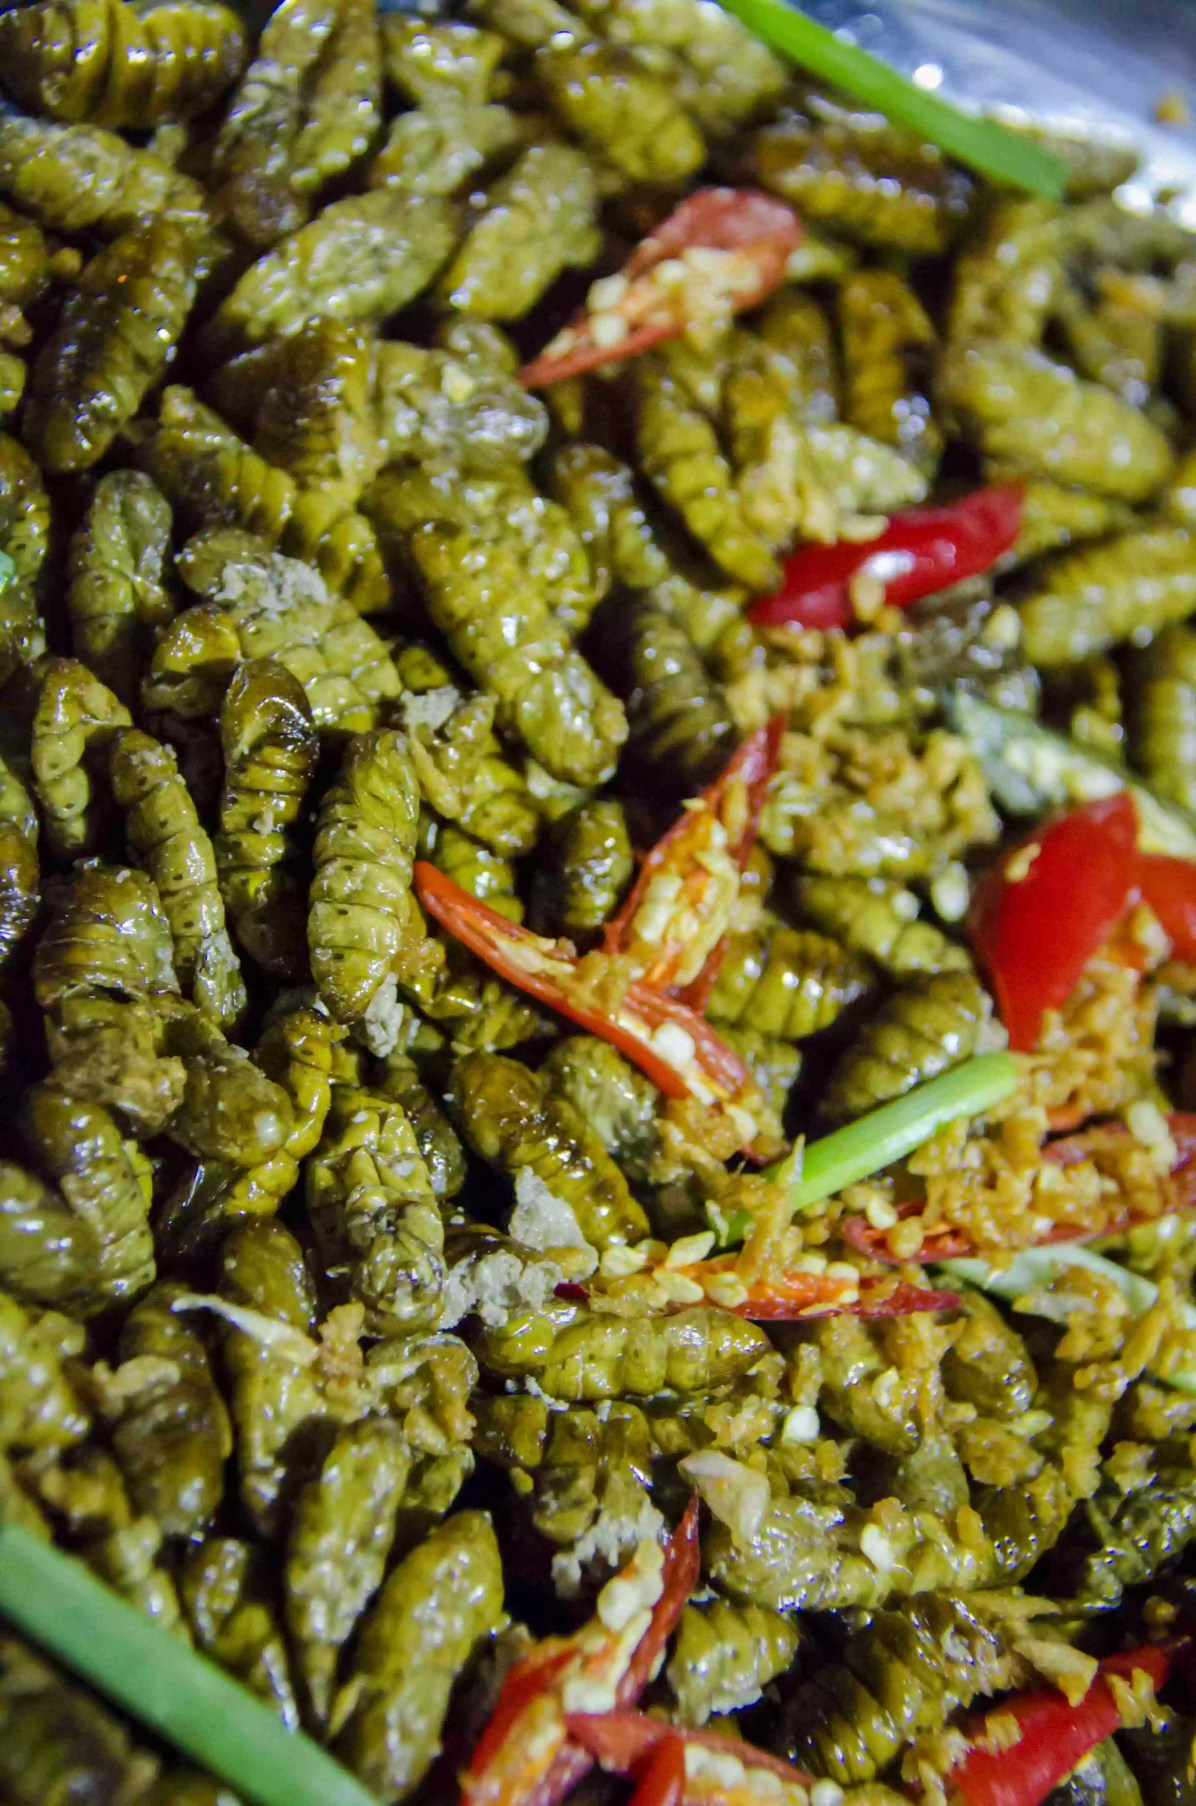 Eating Insects: Maggots